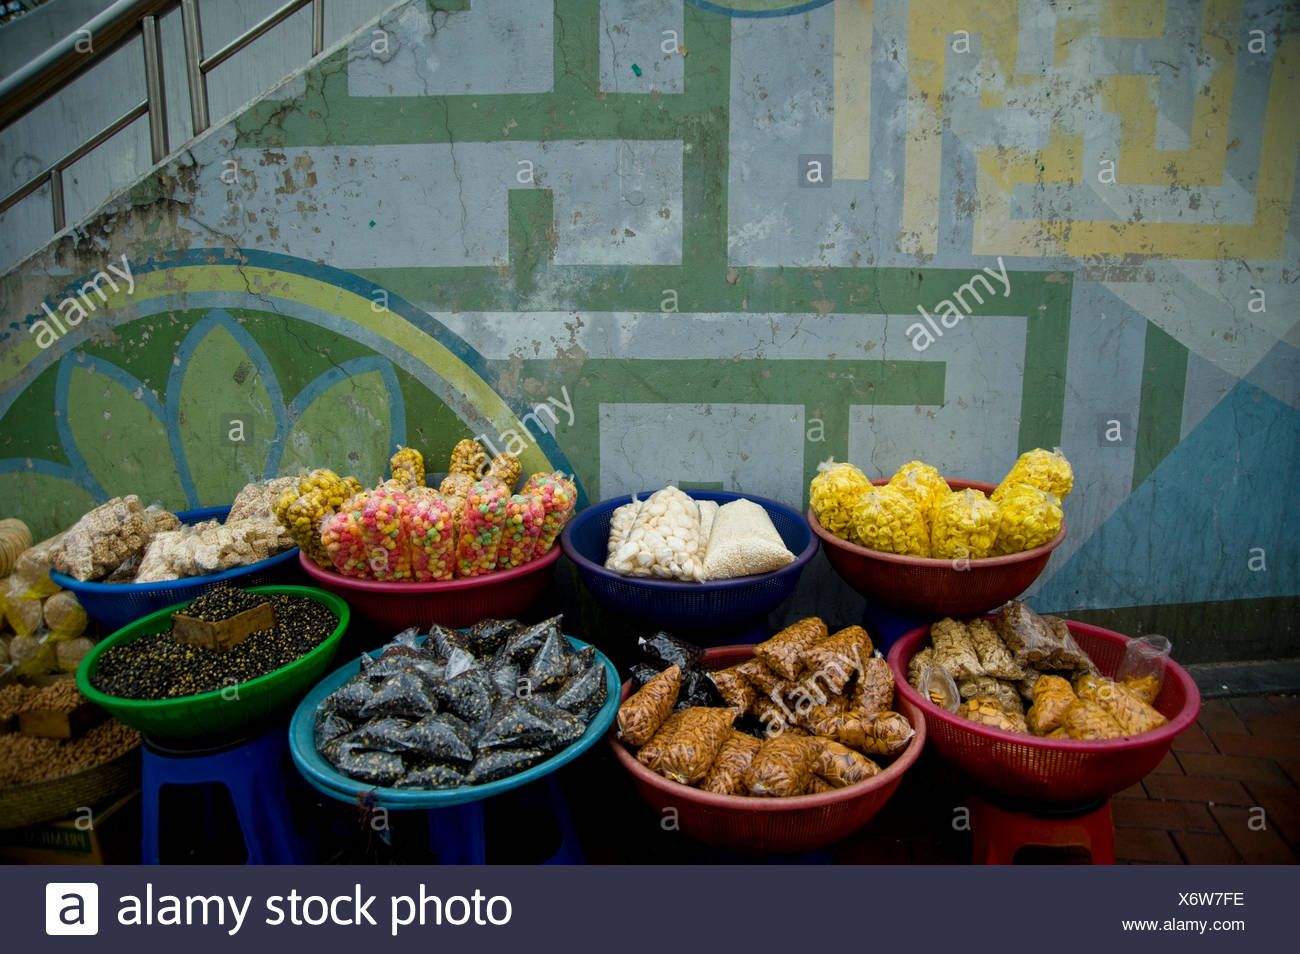 A buffet table is laid out with food for Buddha's birthday festival. - Stock Image